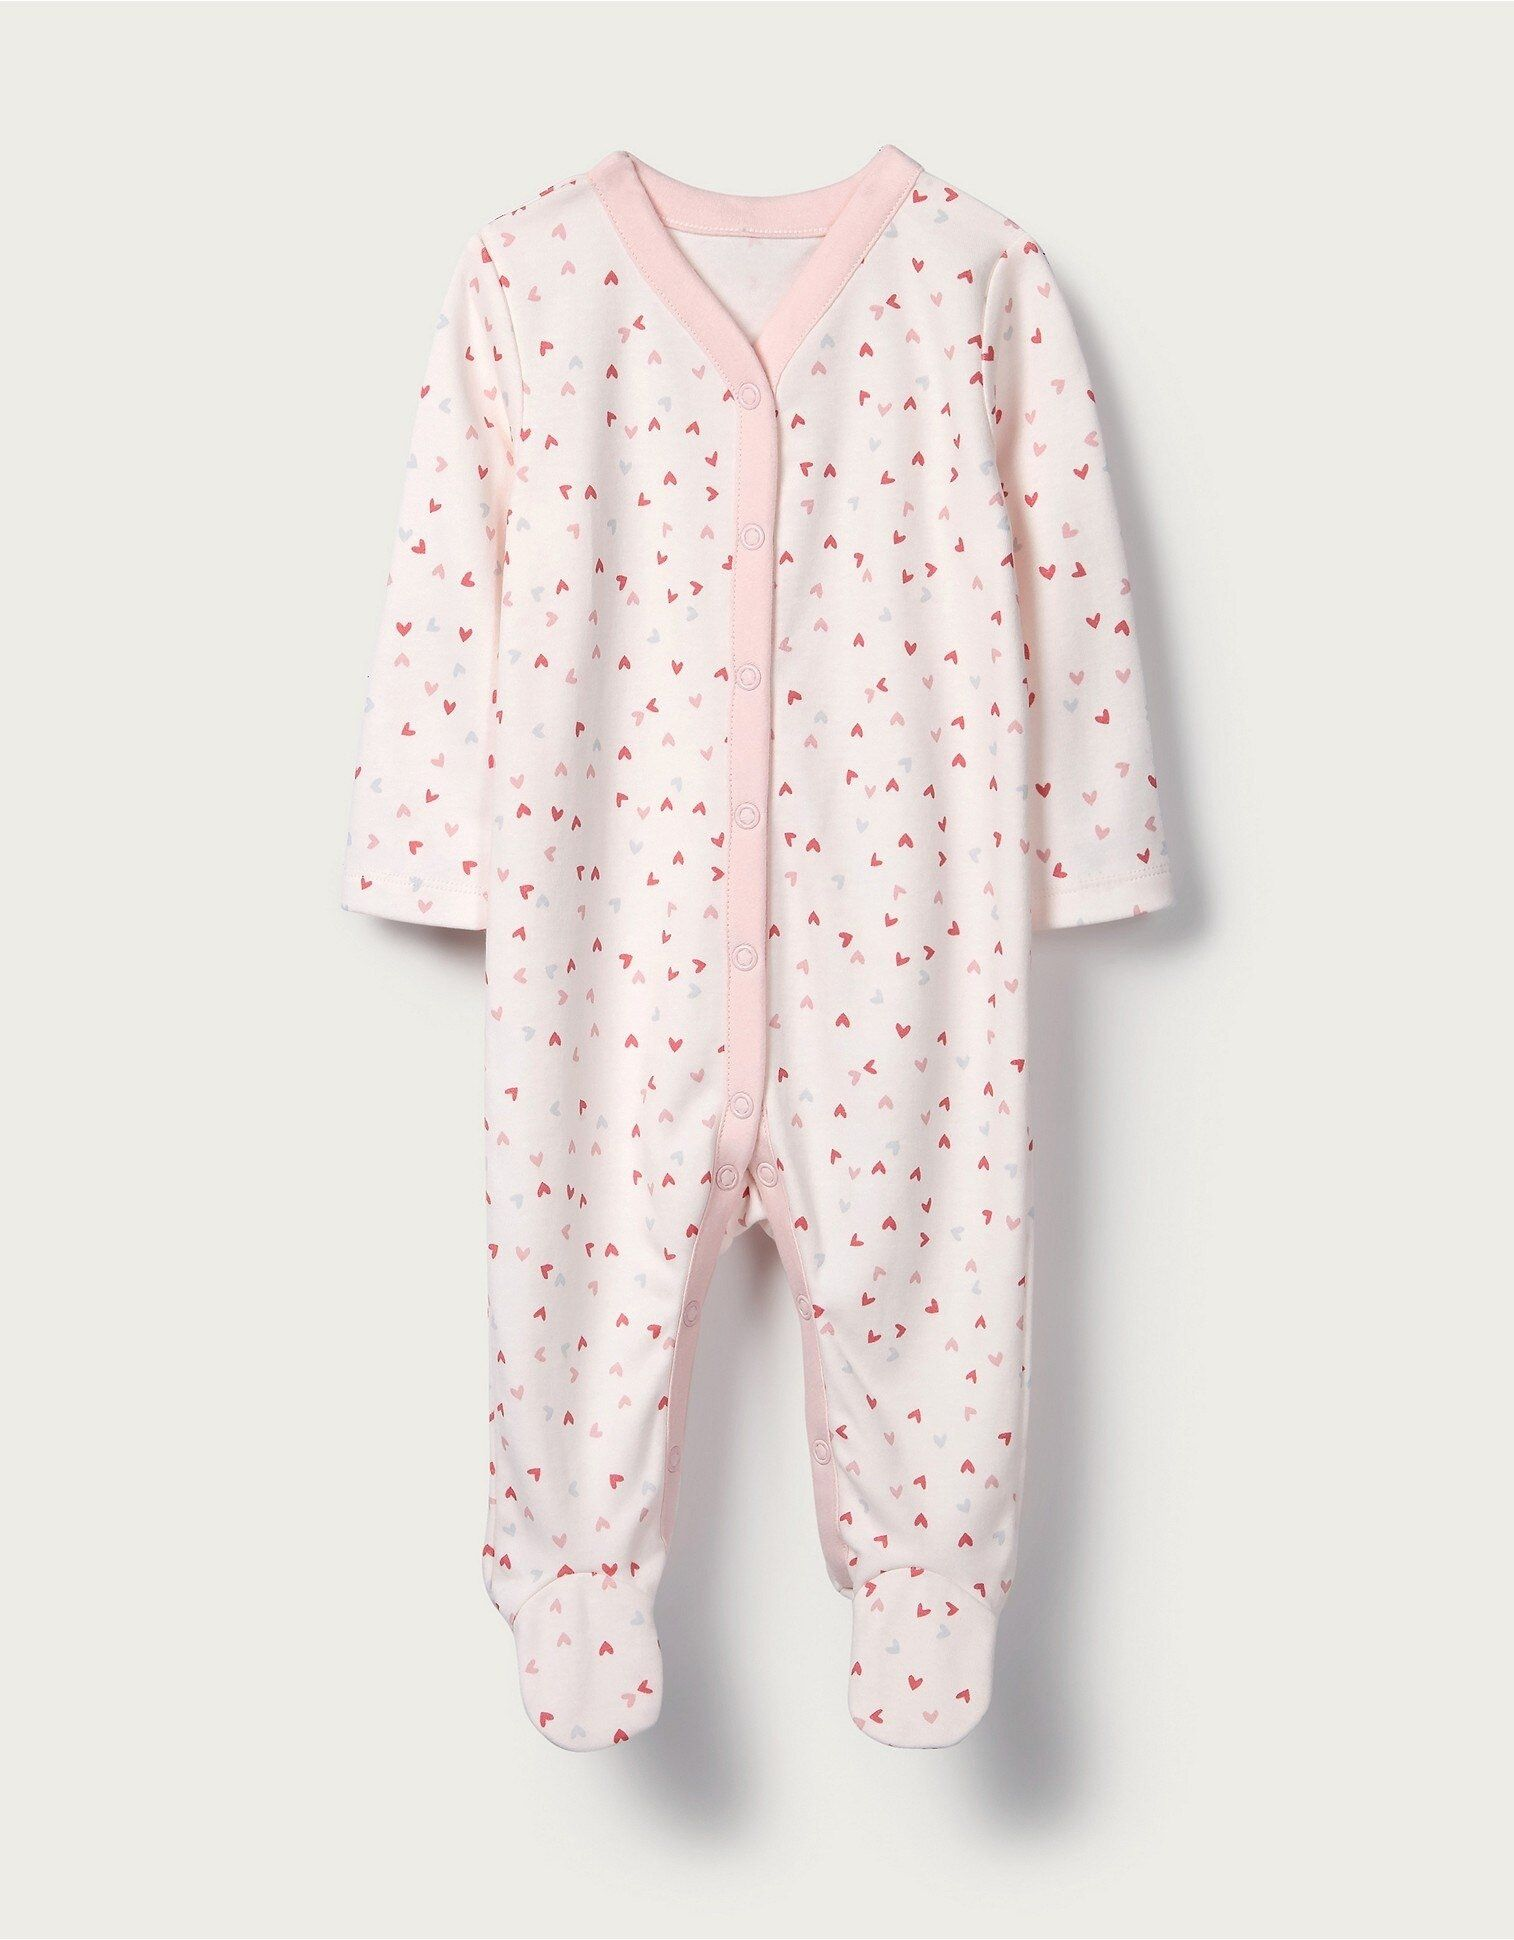 Baby | Newborns, Girls & Boys | The Little White Company UK